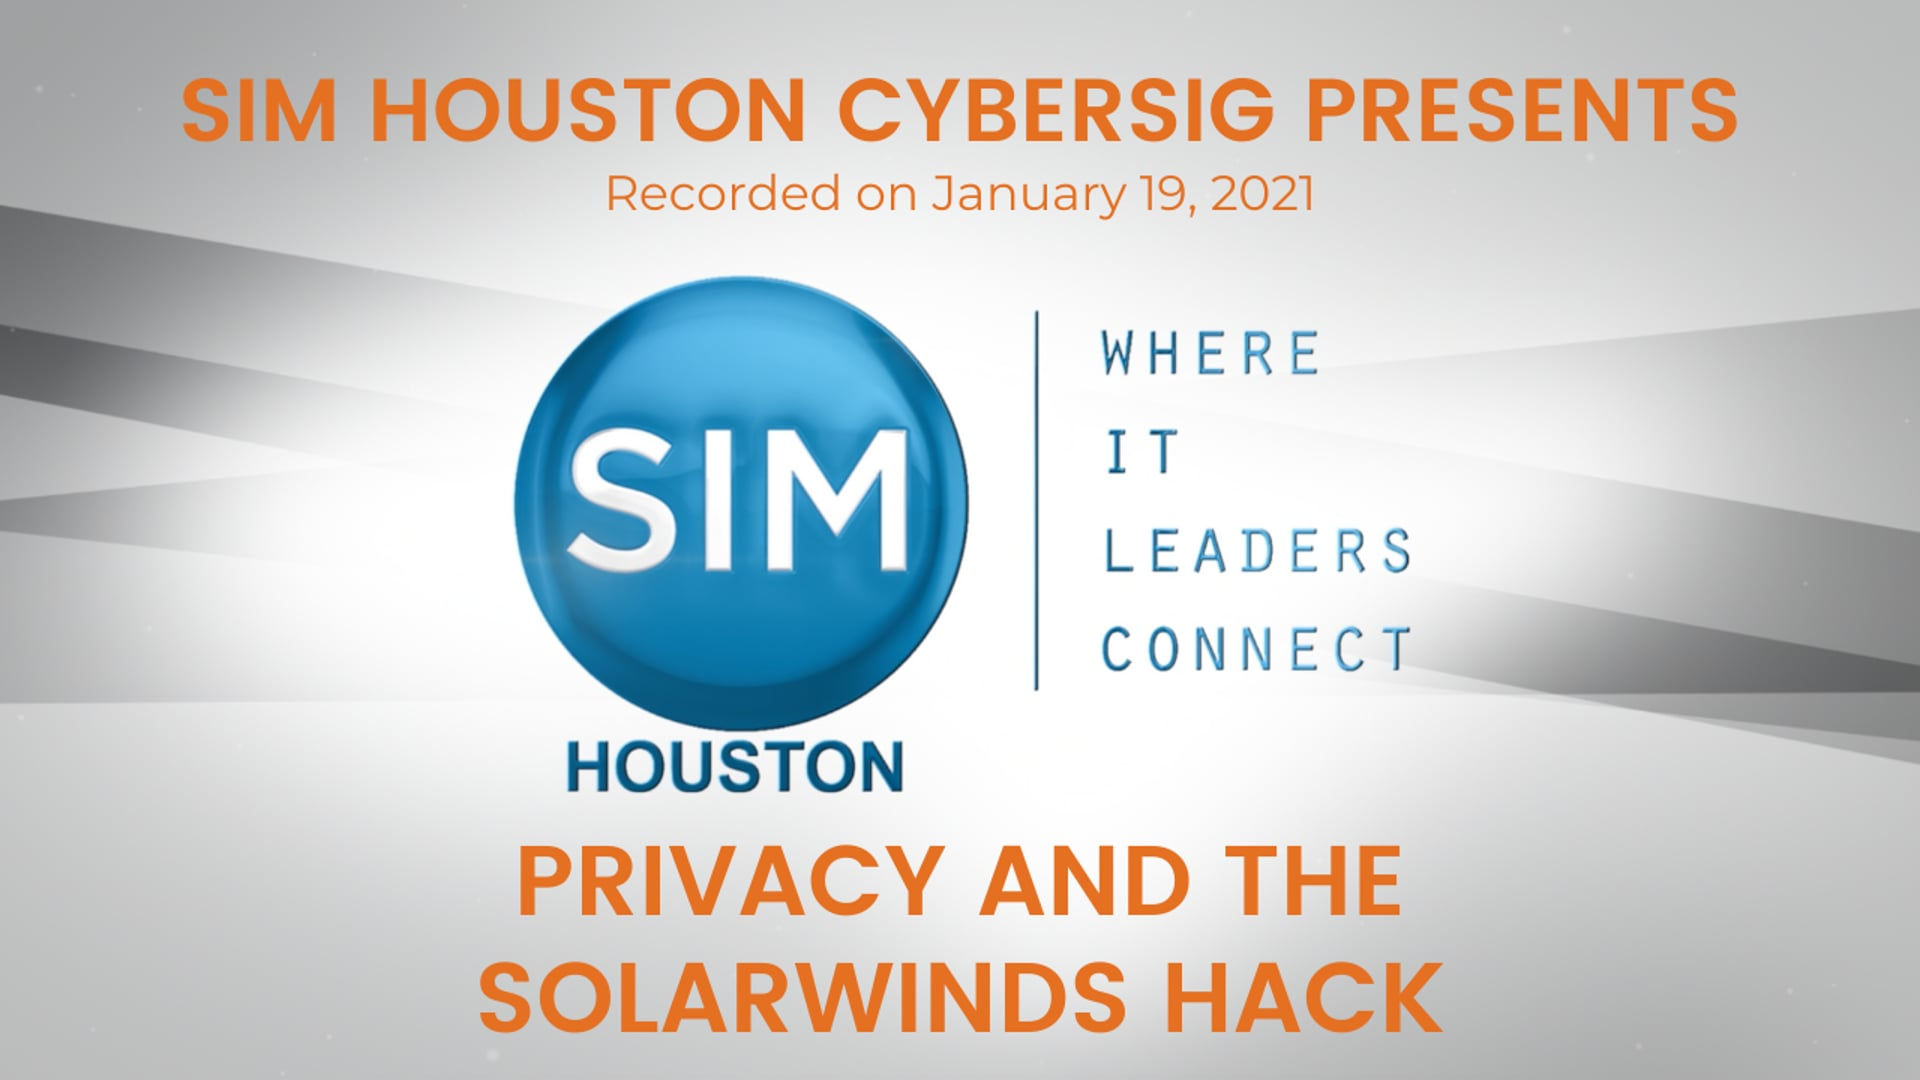 SIM CyberSIG Presents Privacy and the Solar Winds Hack